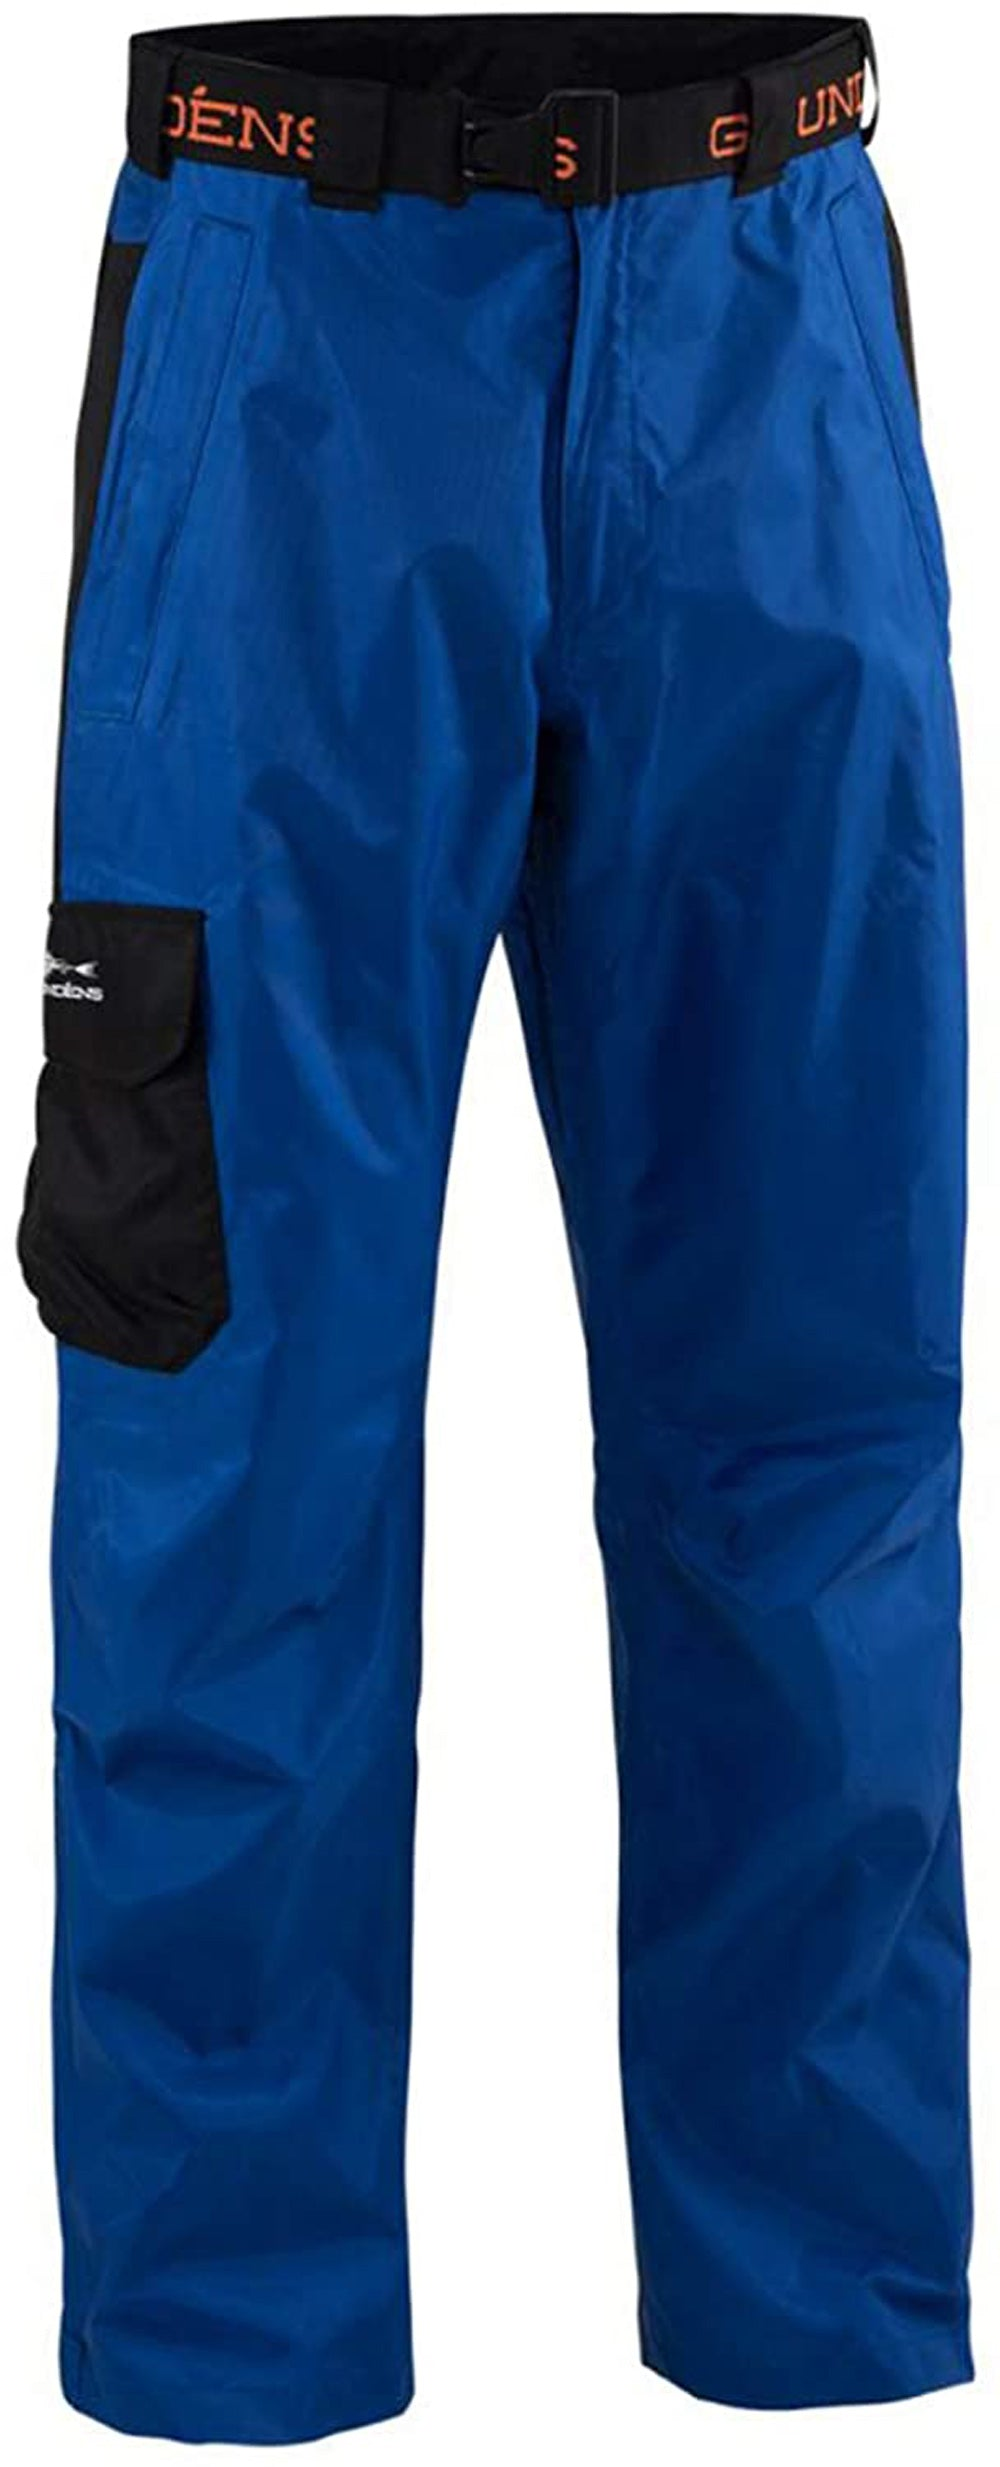 Weather Watch Pant in Glacier Blue color